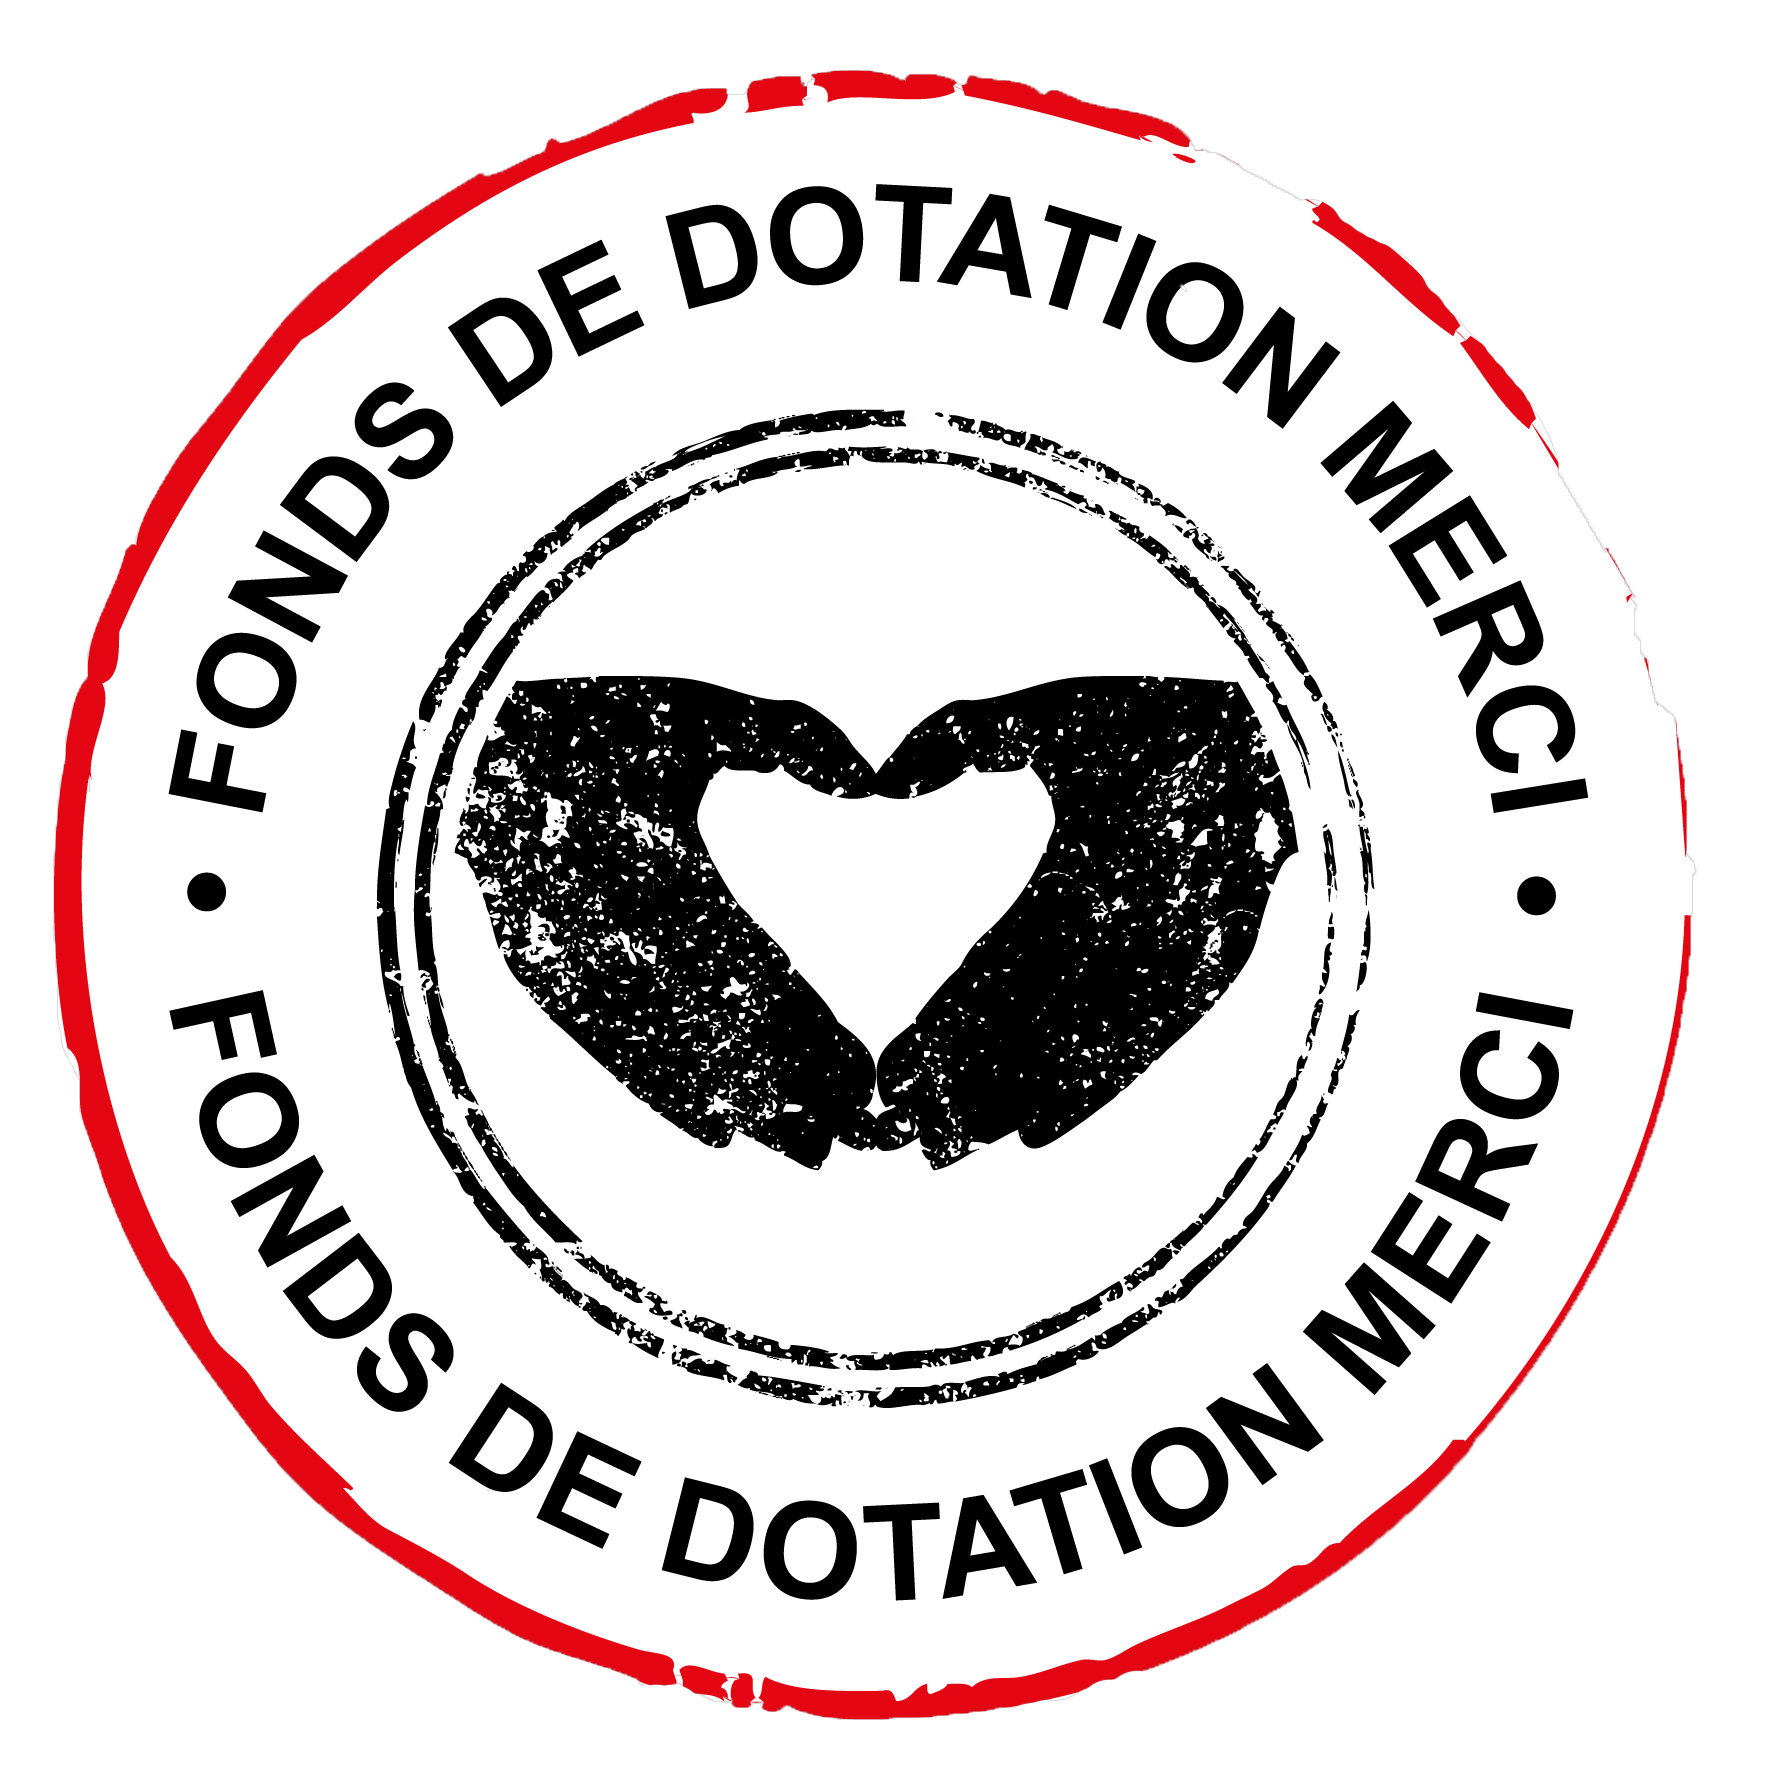 Fonds de dotation merci